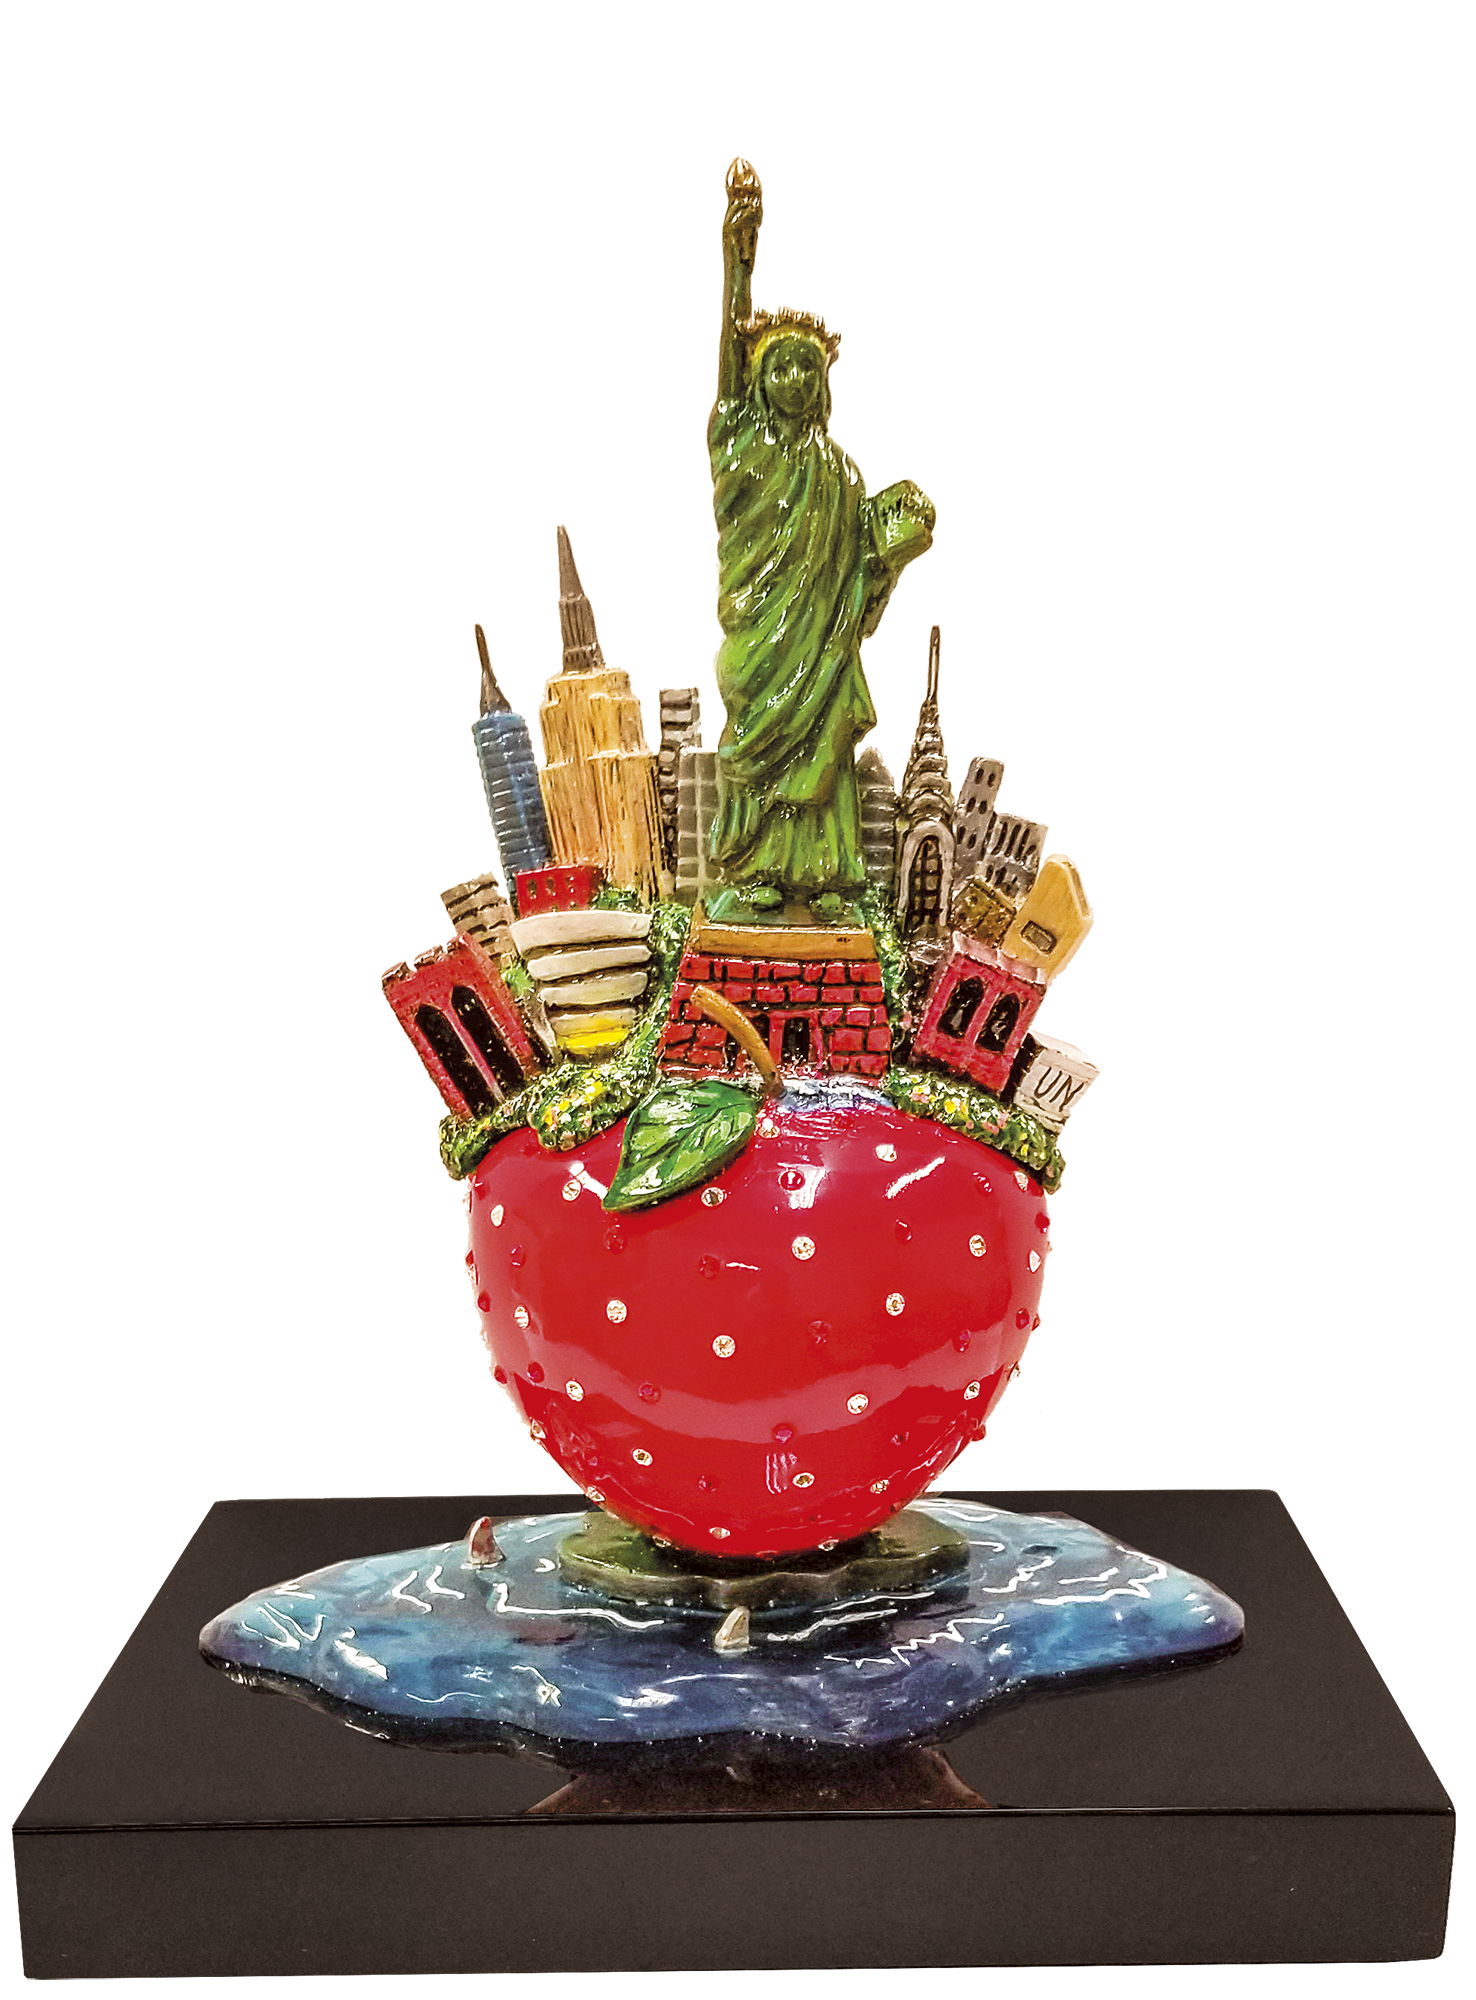 Charles Fazzino - Little Bronze Apple Sculpture , 5553-011-003